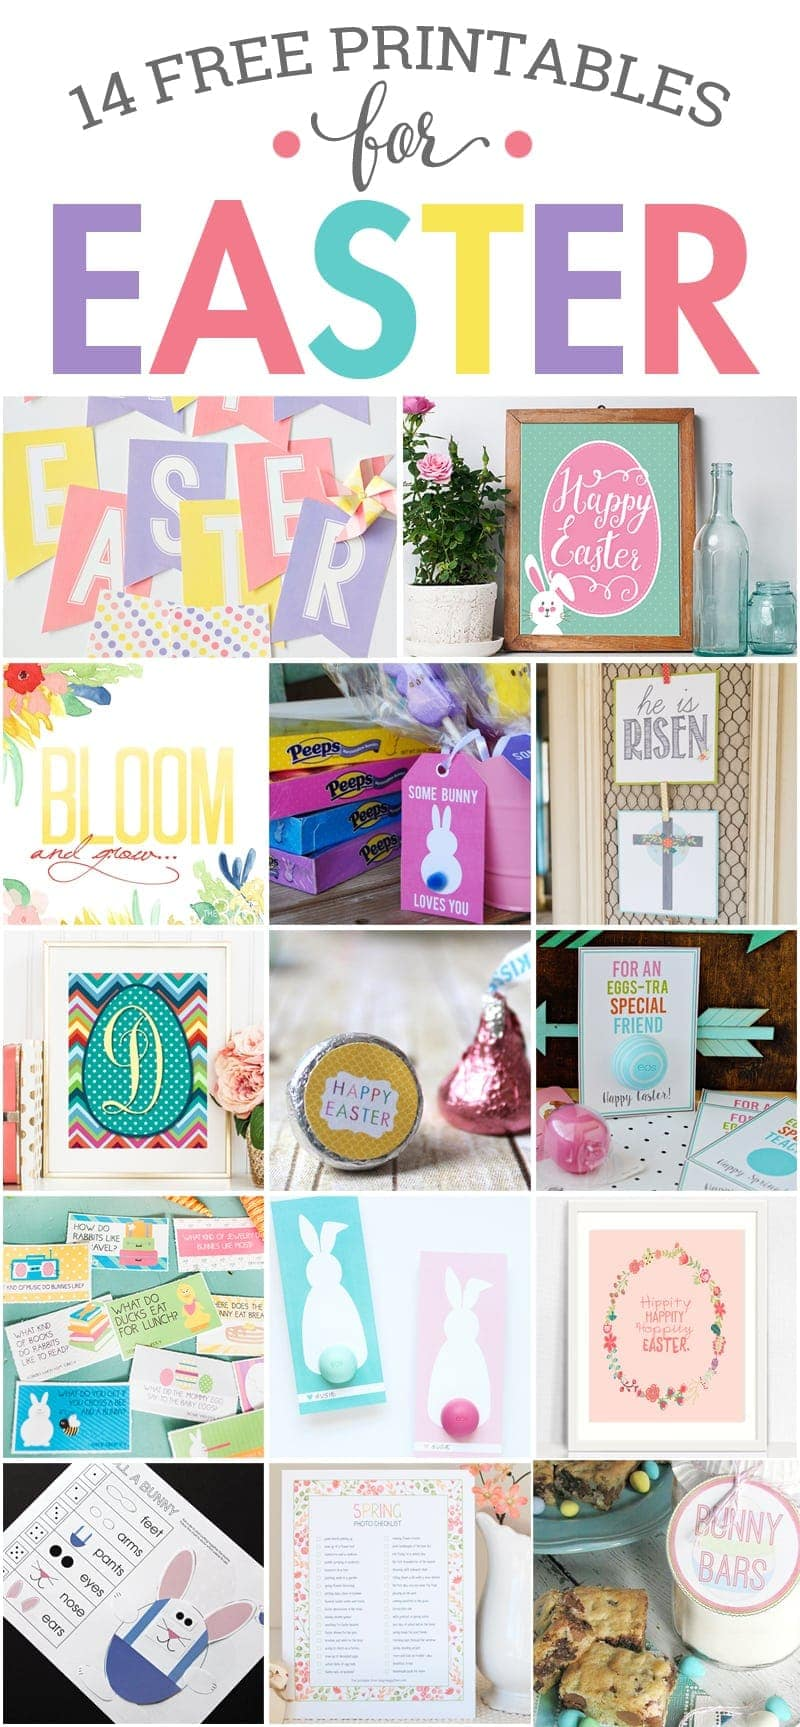 14 Free Printables for Easter